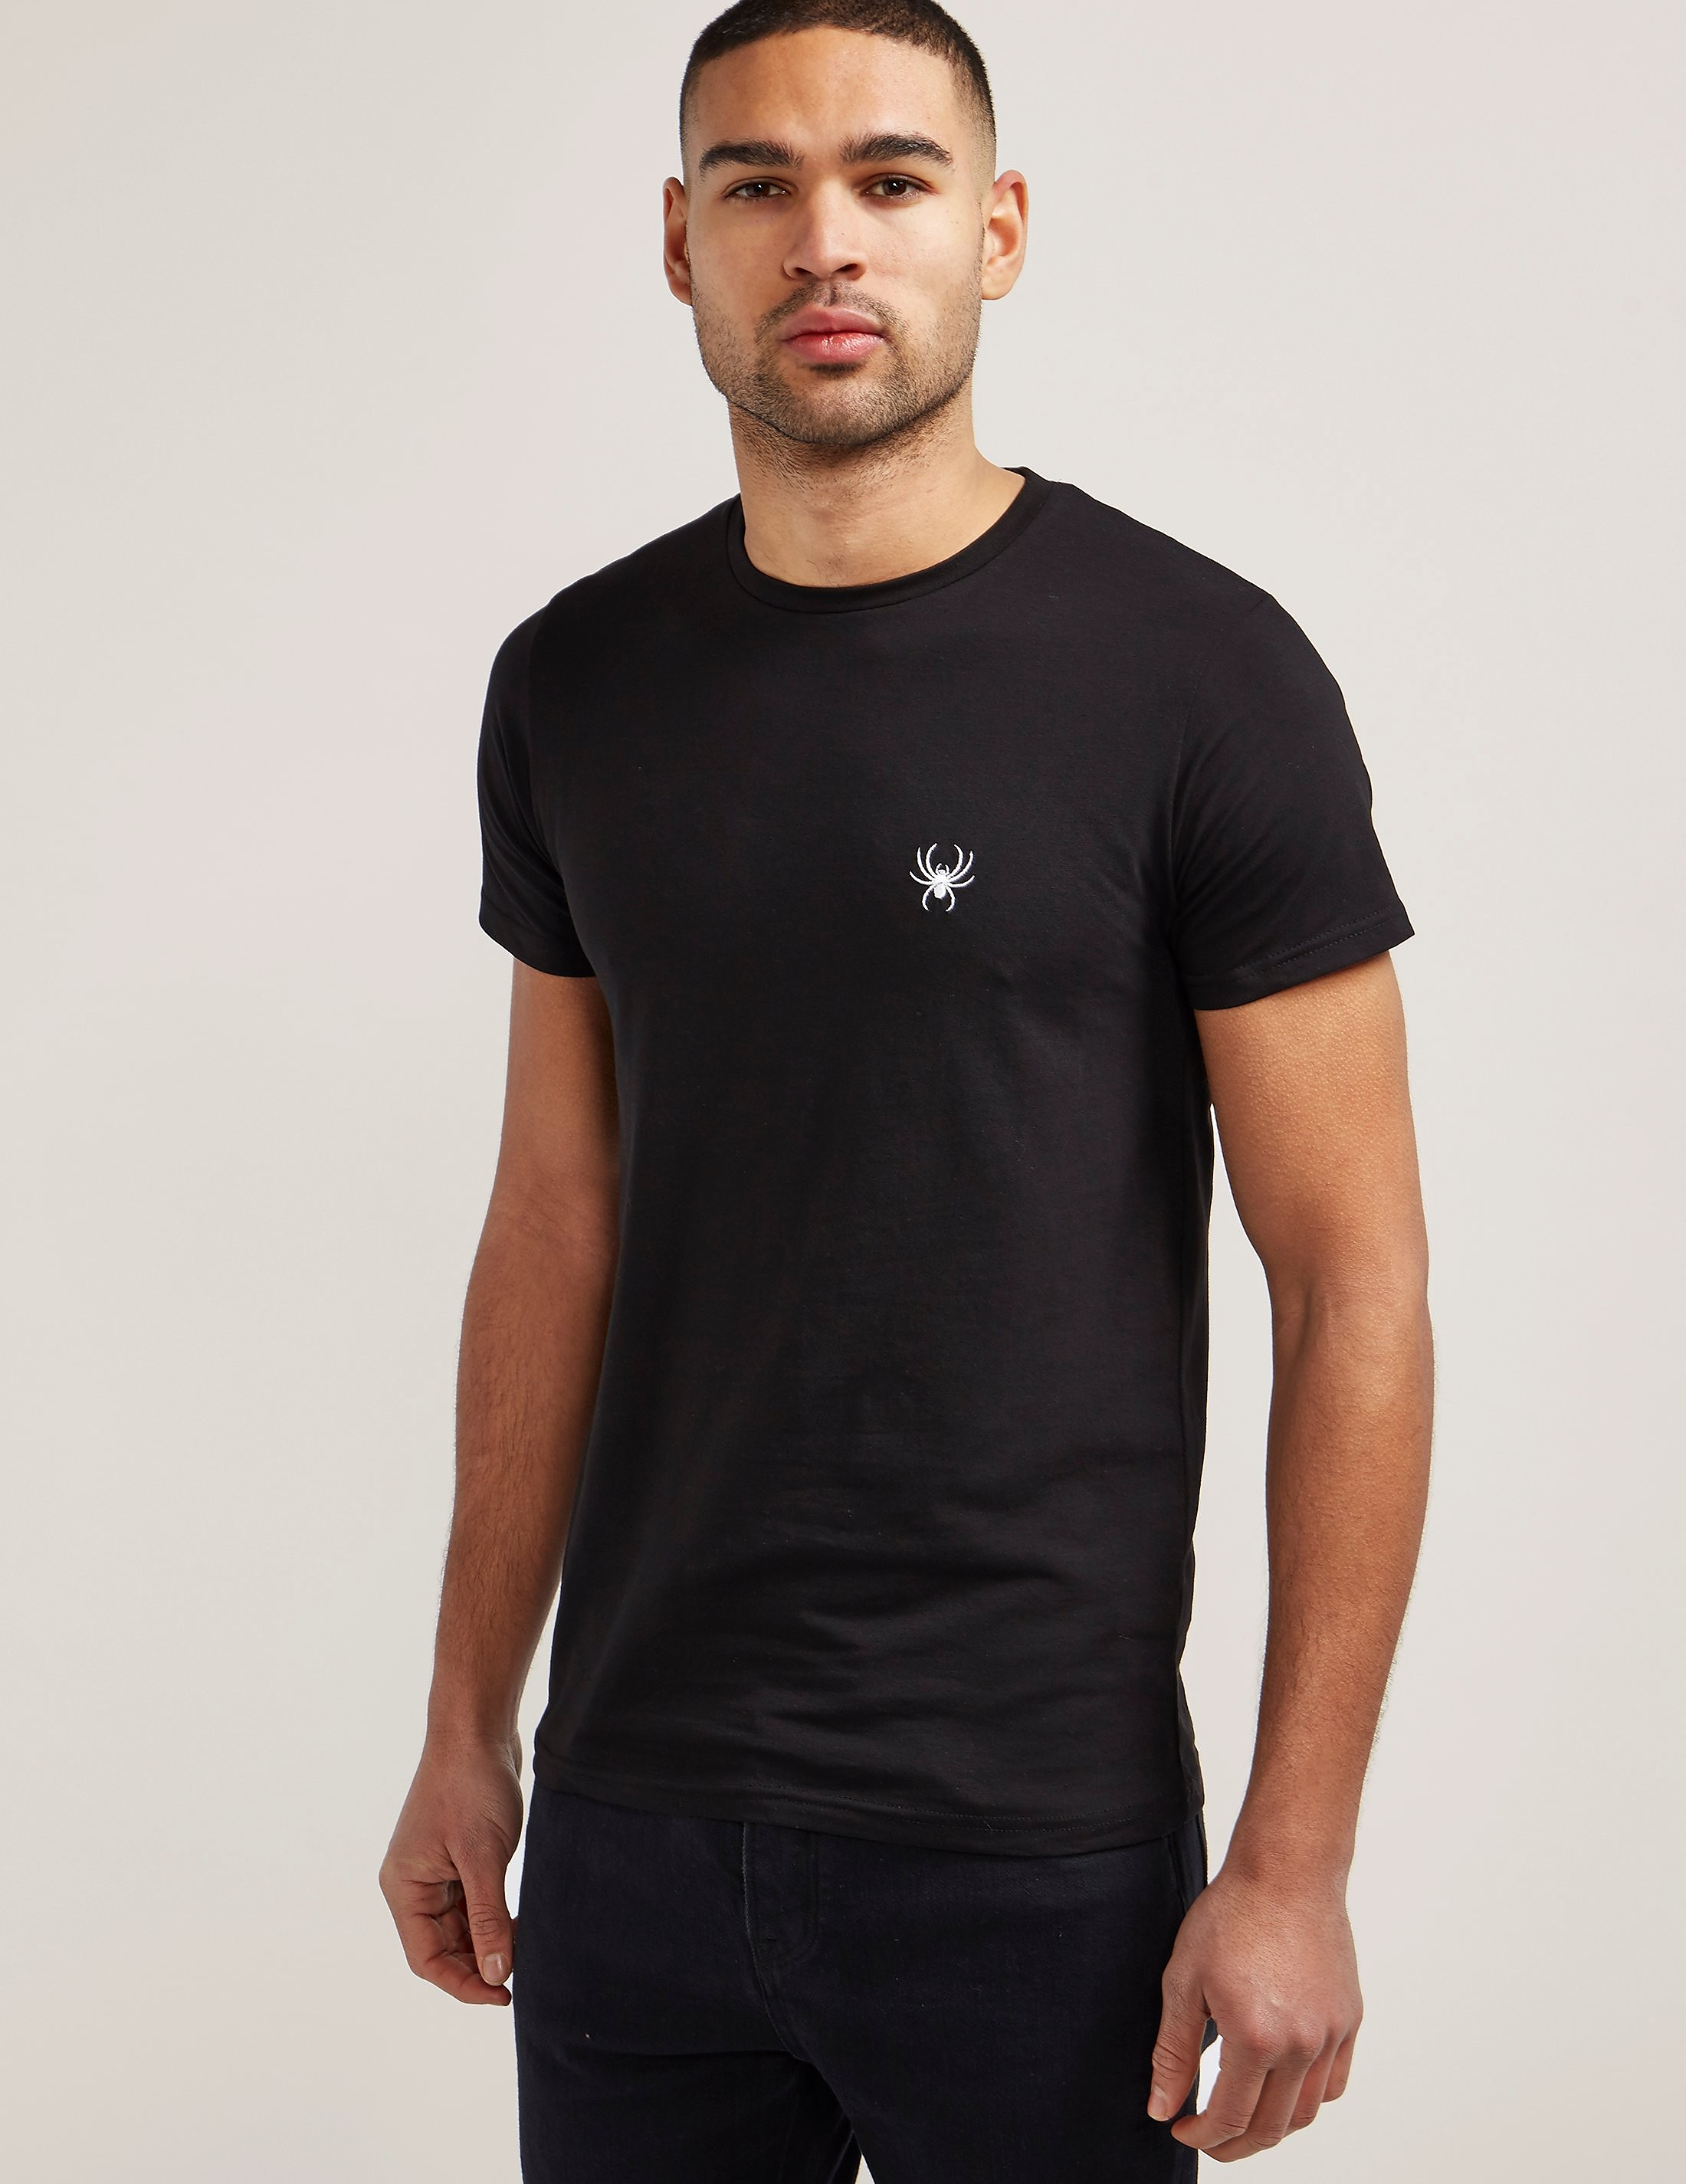 Intense Clothing Rebal T-Shirt